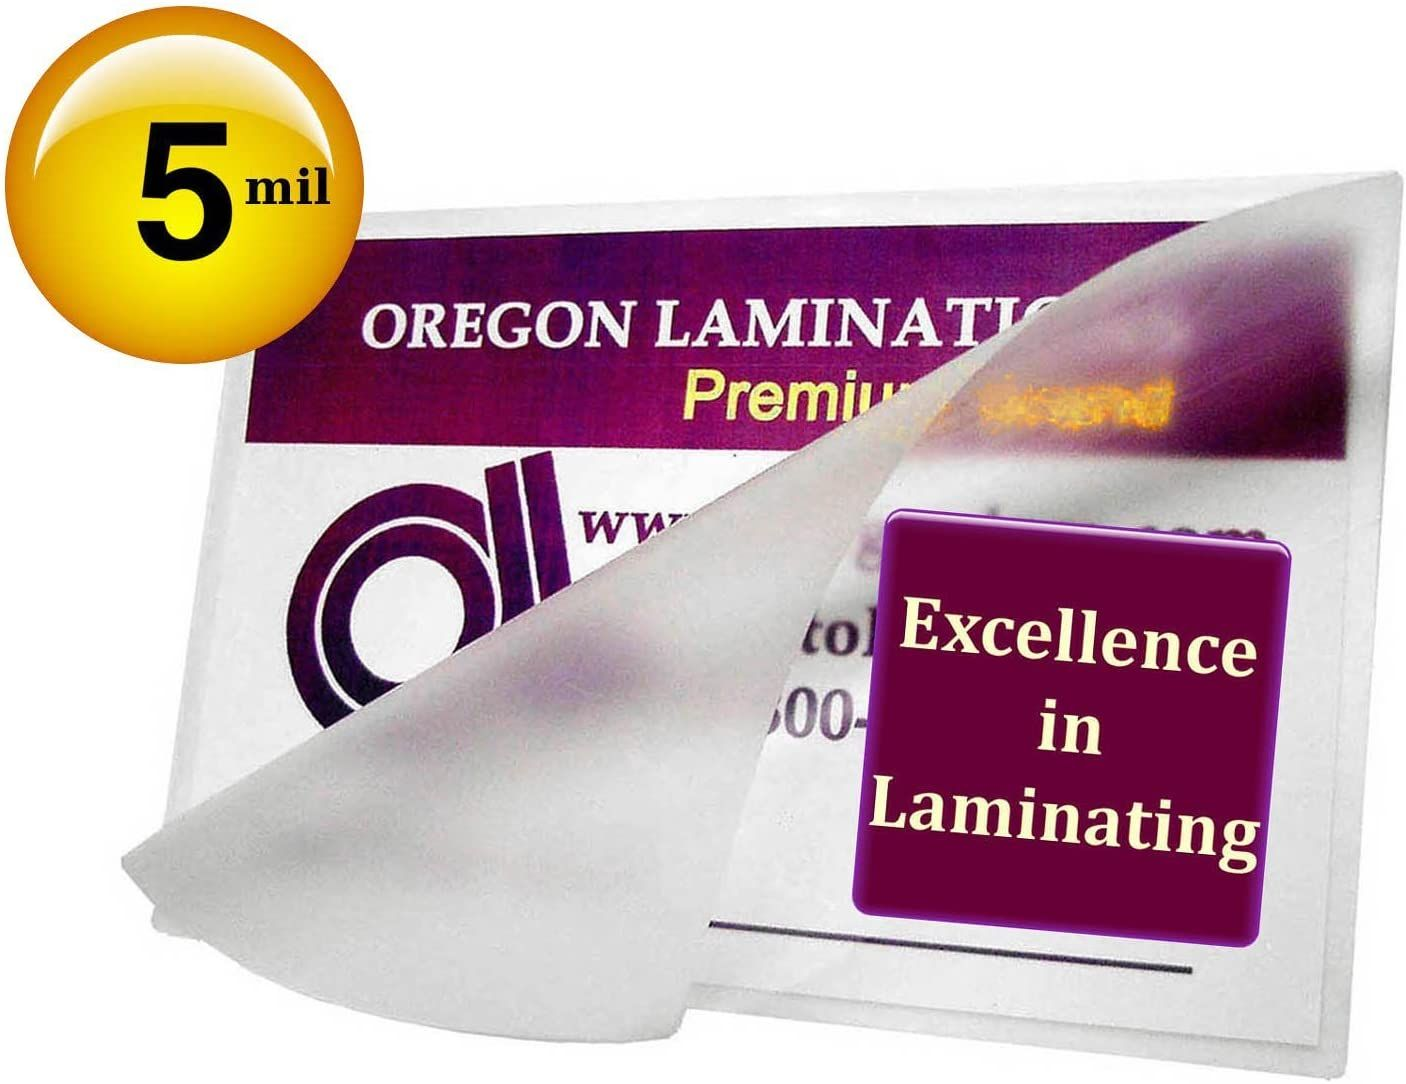 Oregon Lamination Premium Wallet Photo Size 2 75 X 3 75 Thermal Laminating Pouches Are Top 15 H In 2020 Craft Supplies Pouch Wallet